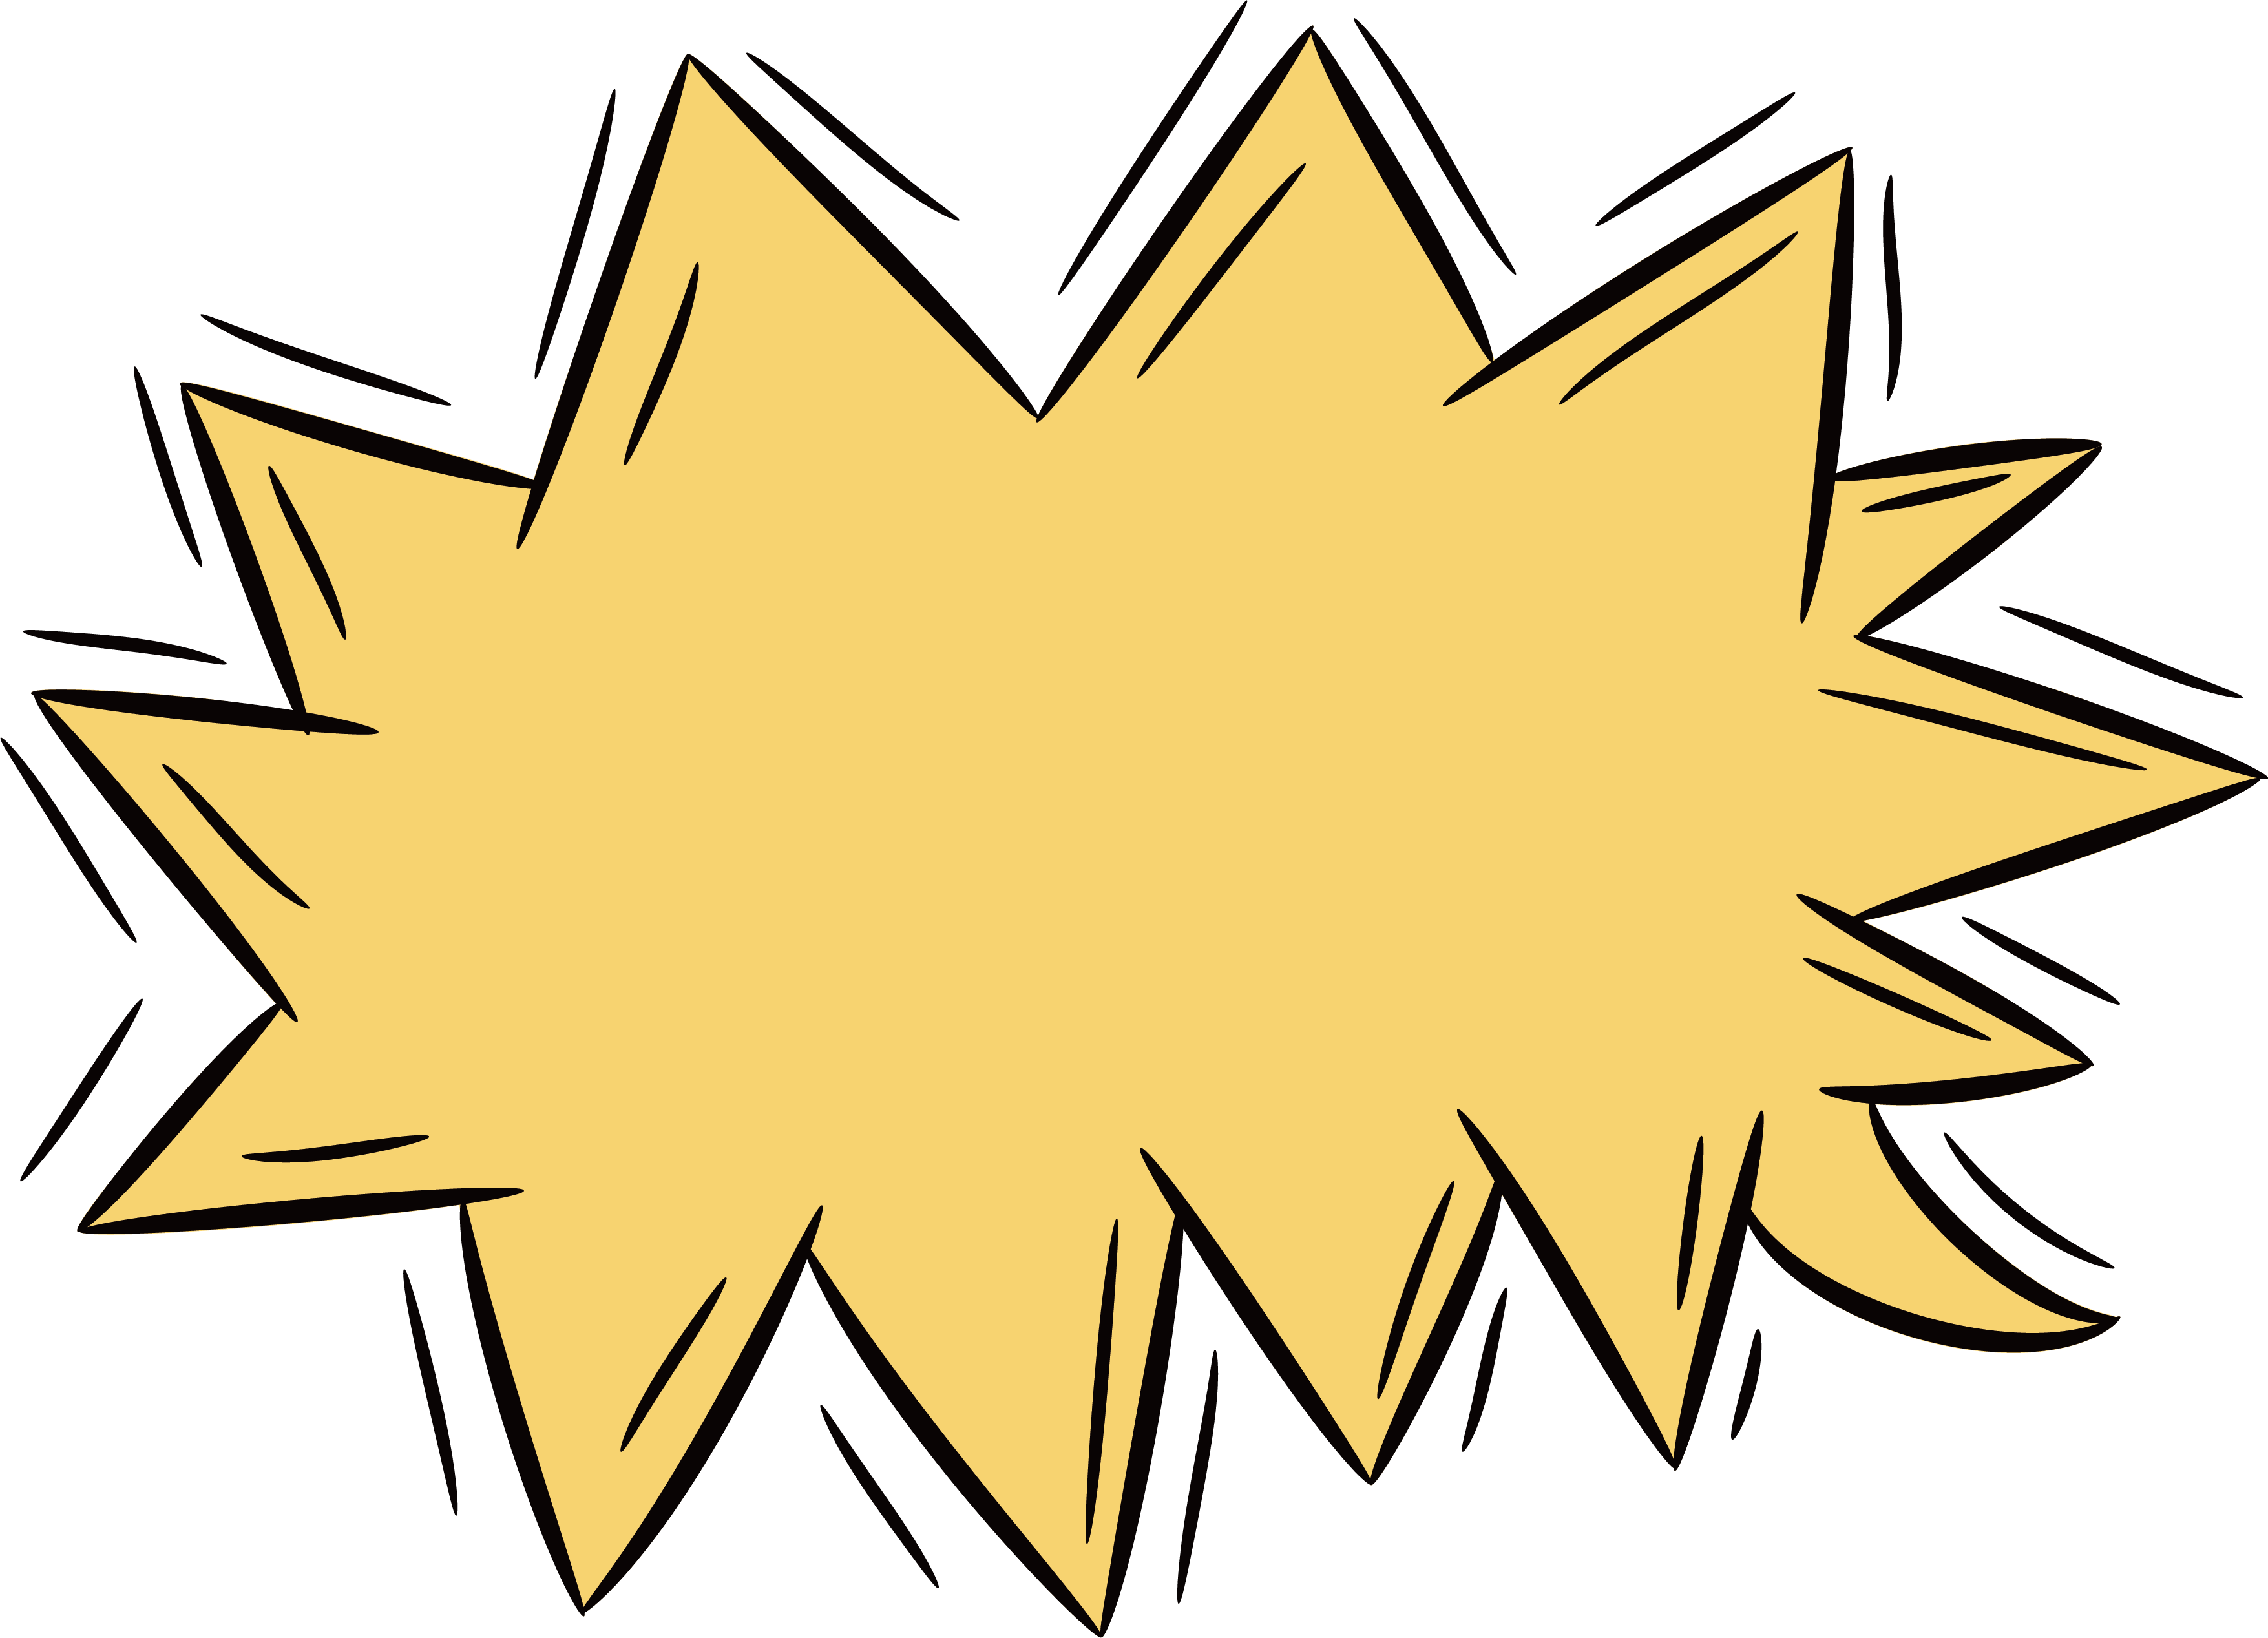 Clipart explosion leaf. Clip art yellow serrated